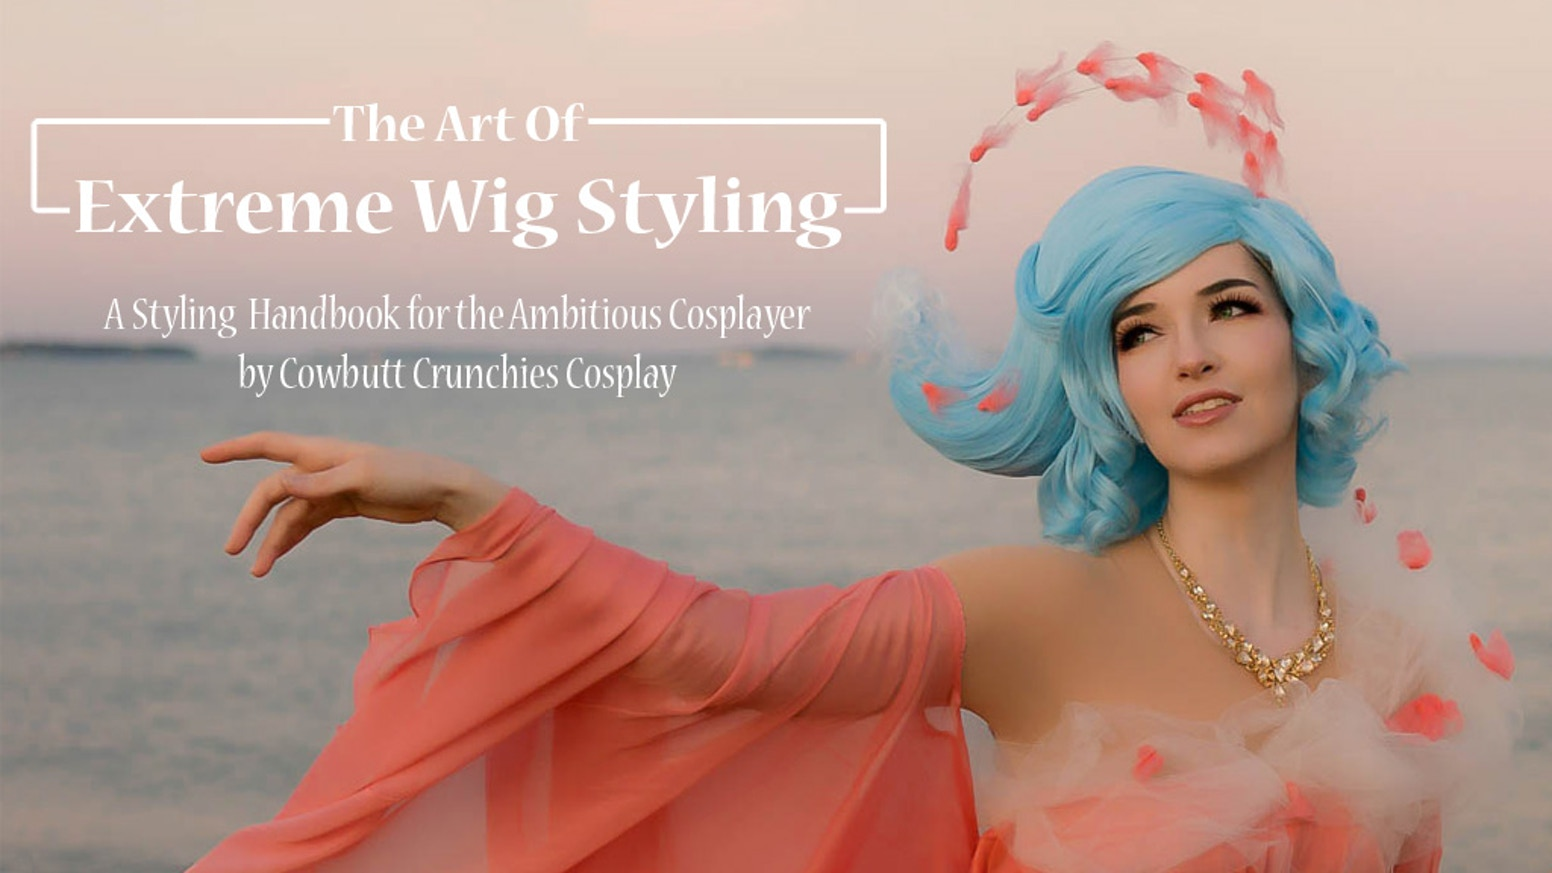 A styling handbook for the ambitious cosplayer